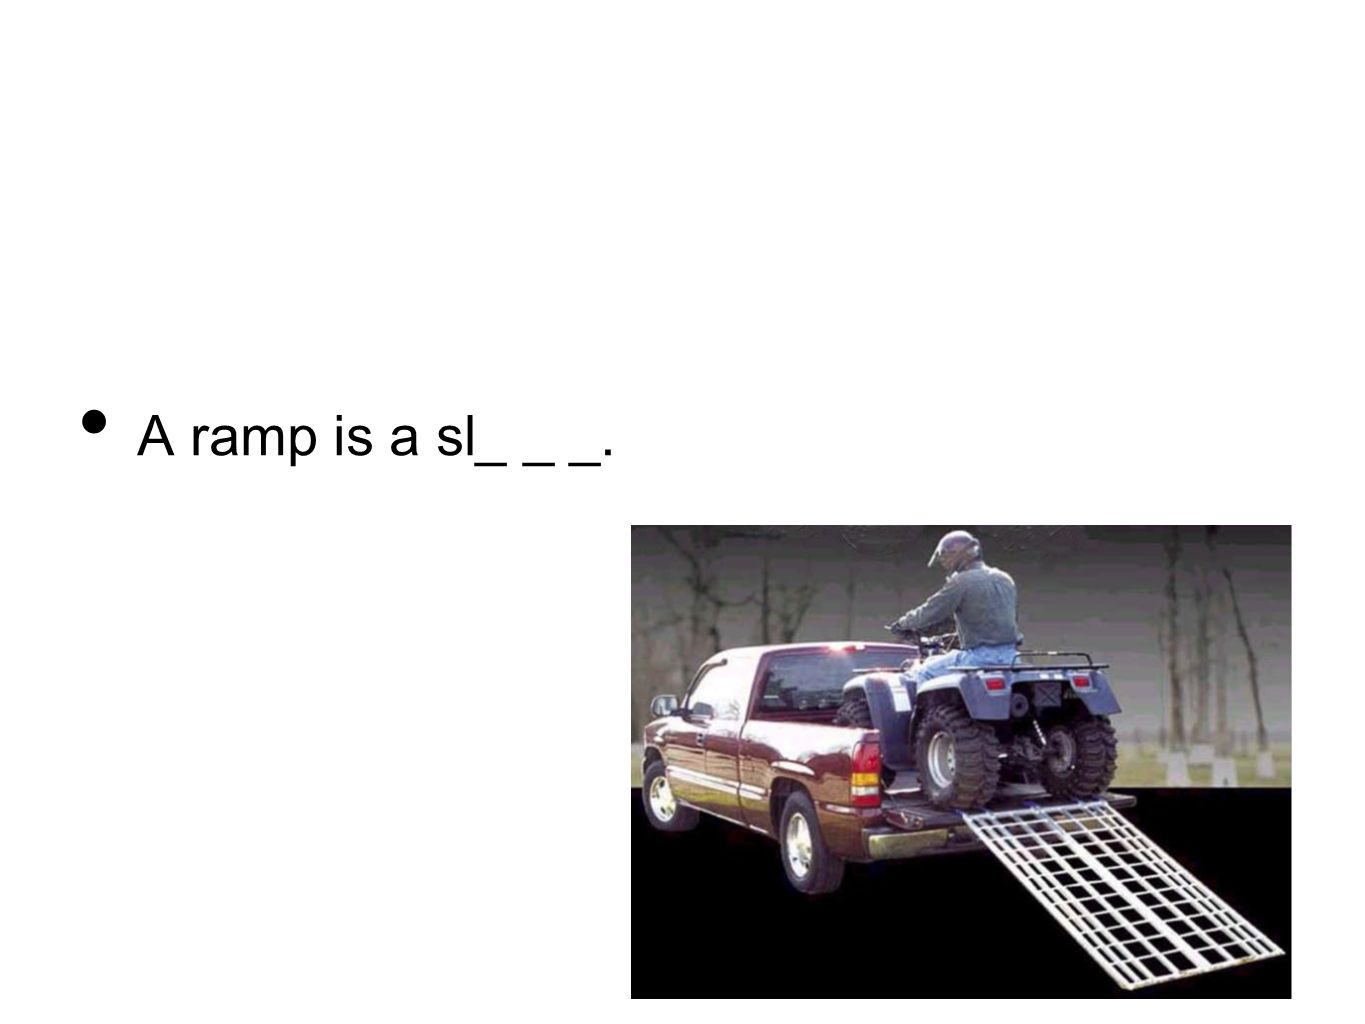 A ramp is a sl_ _ _.